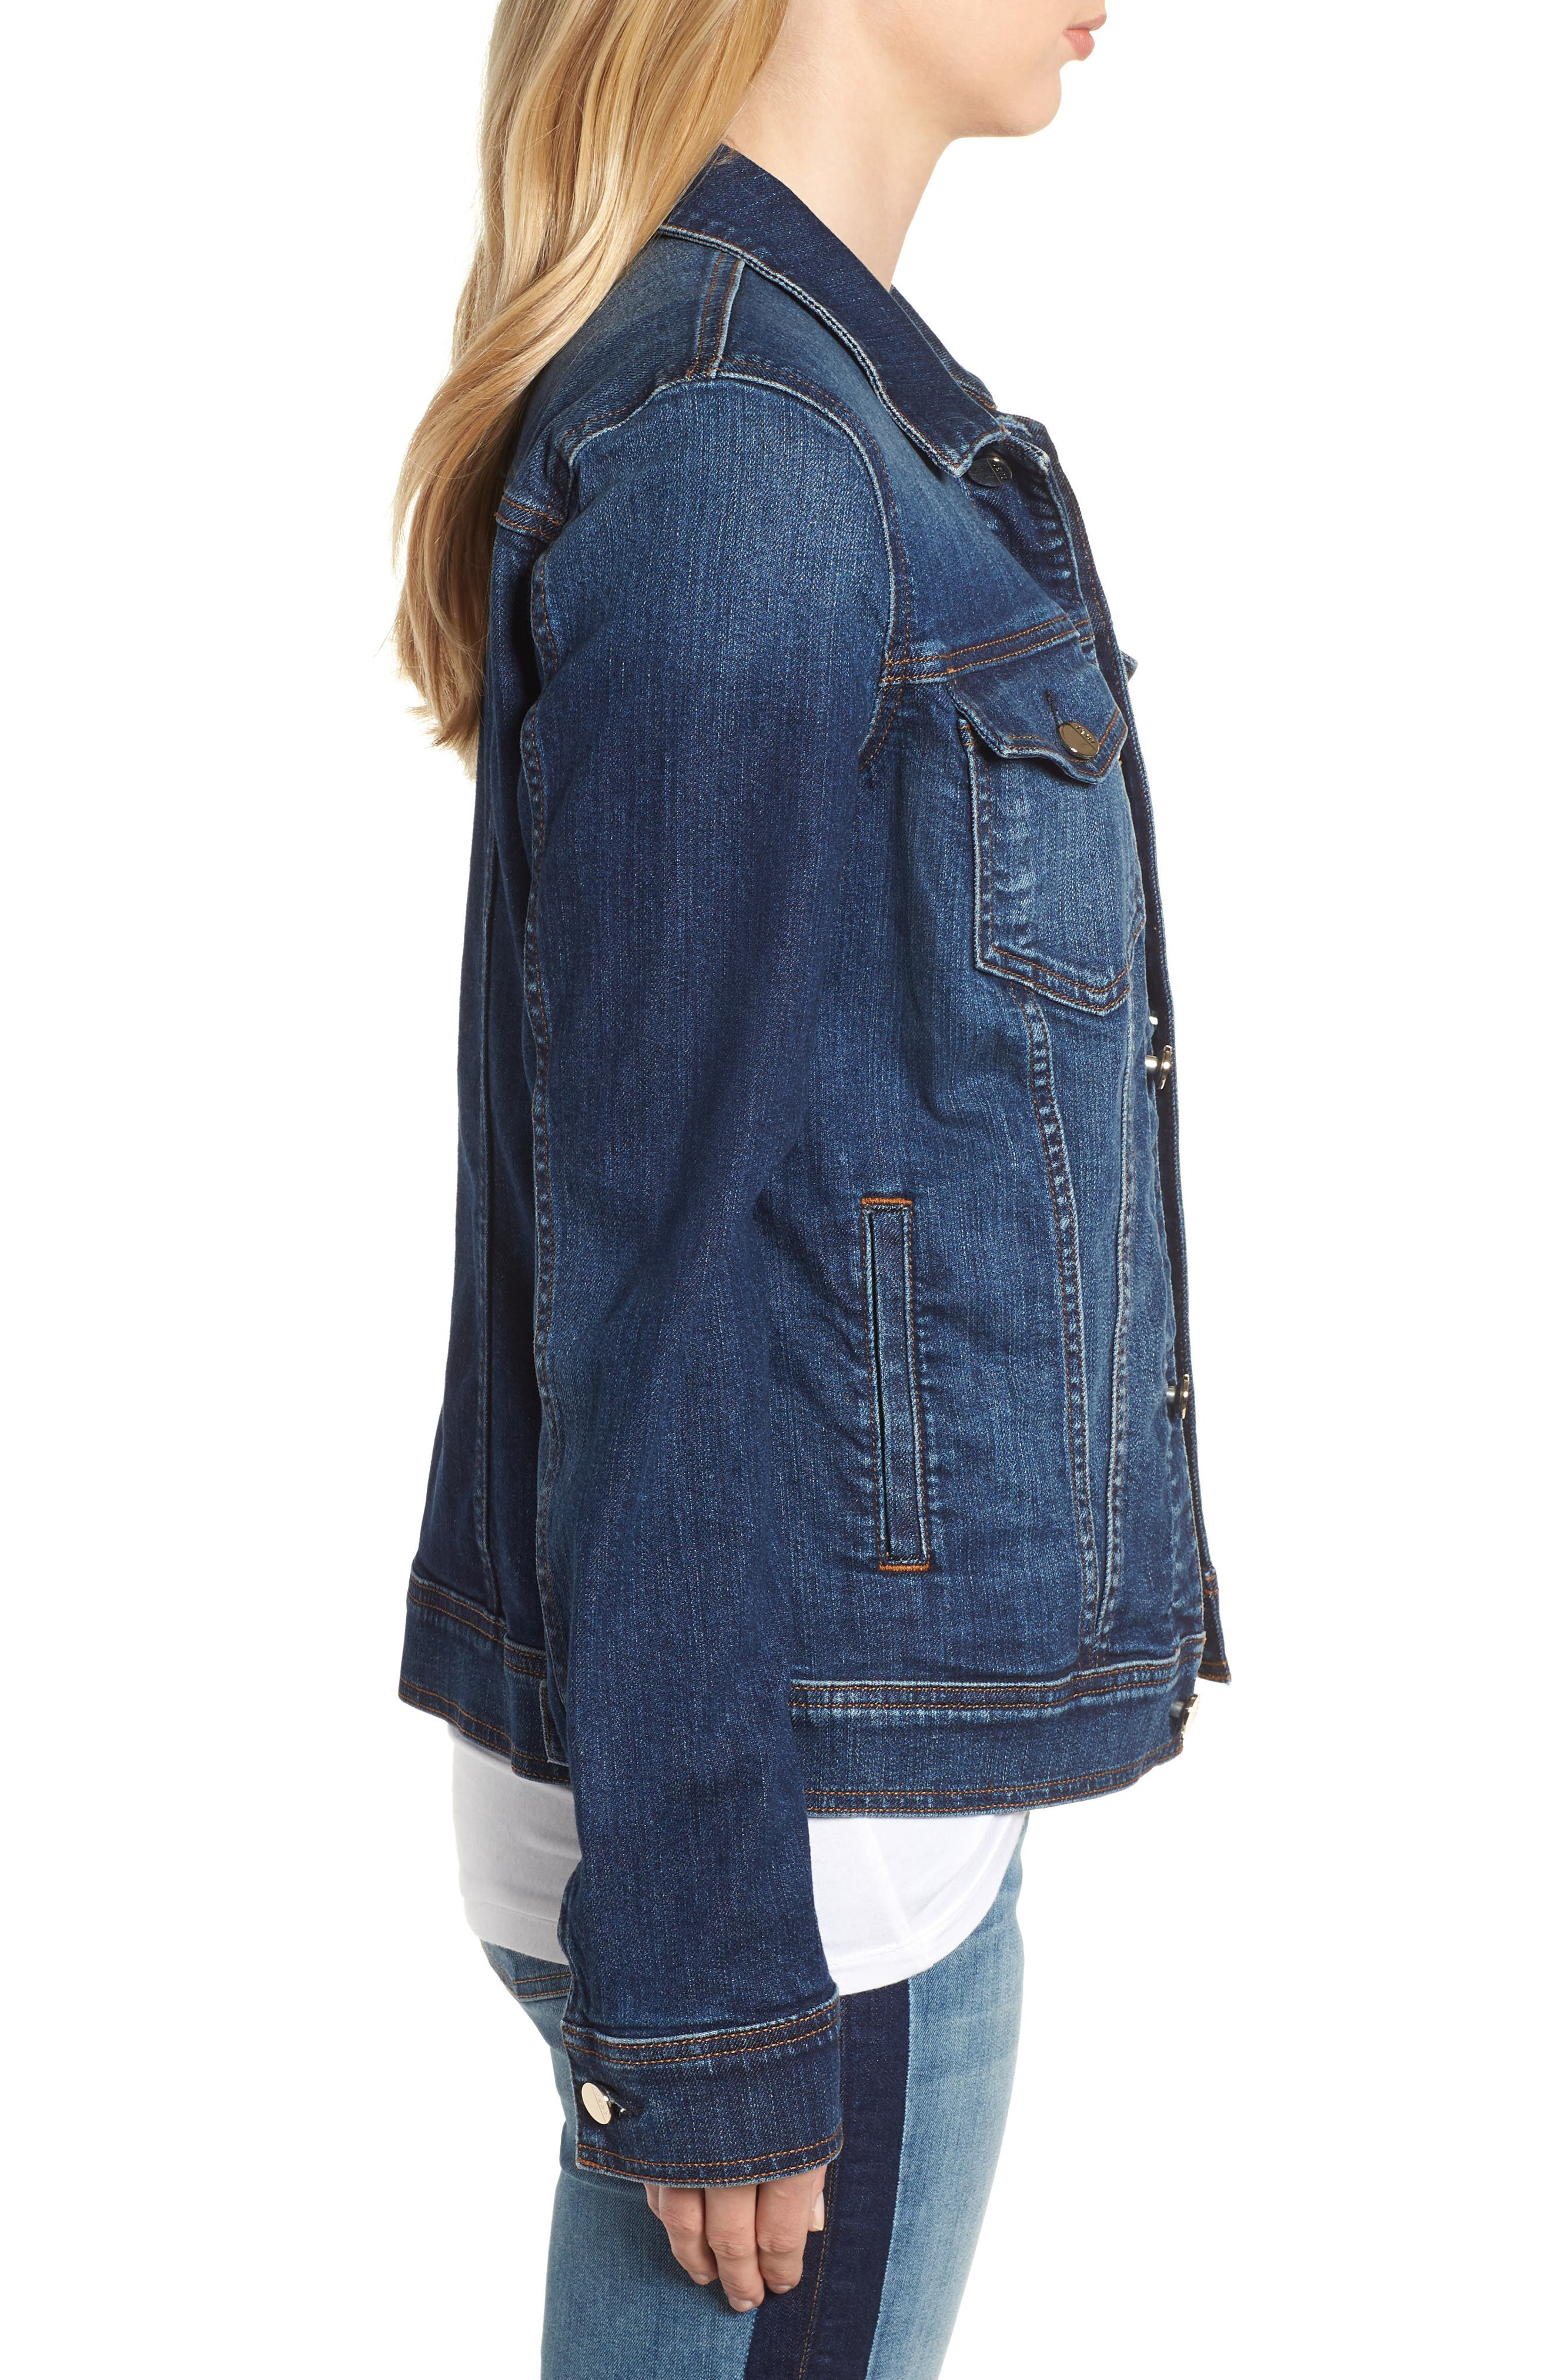 JEN7 BY 7 FOR ALL MANKIND, Classic Denim Jacket, Alternate thumbnail 3, color, 403